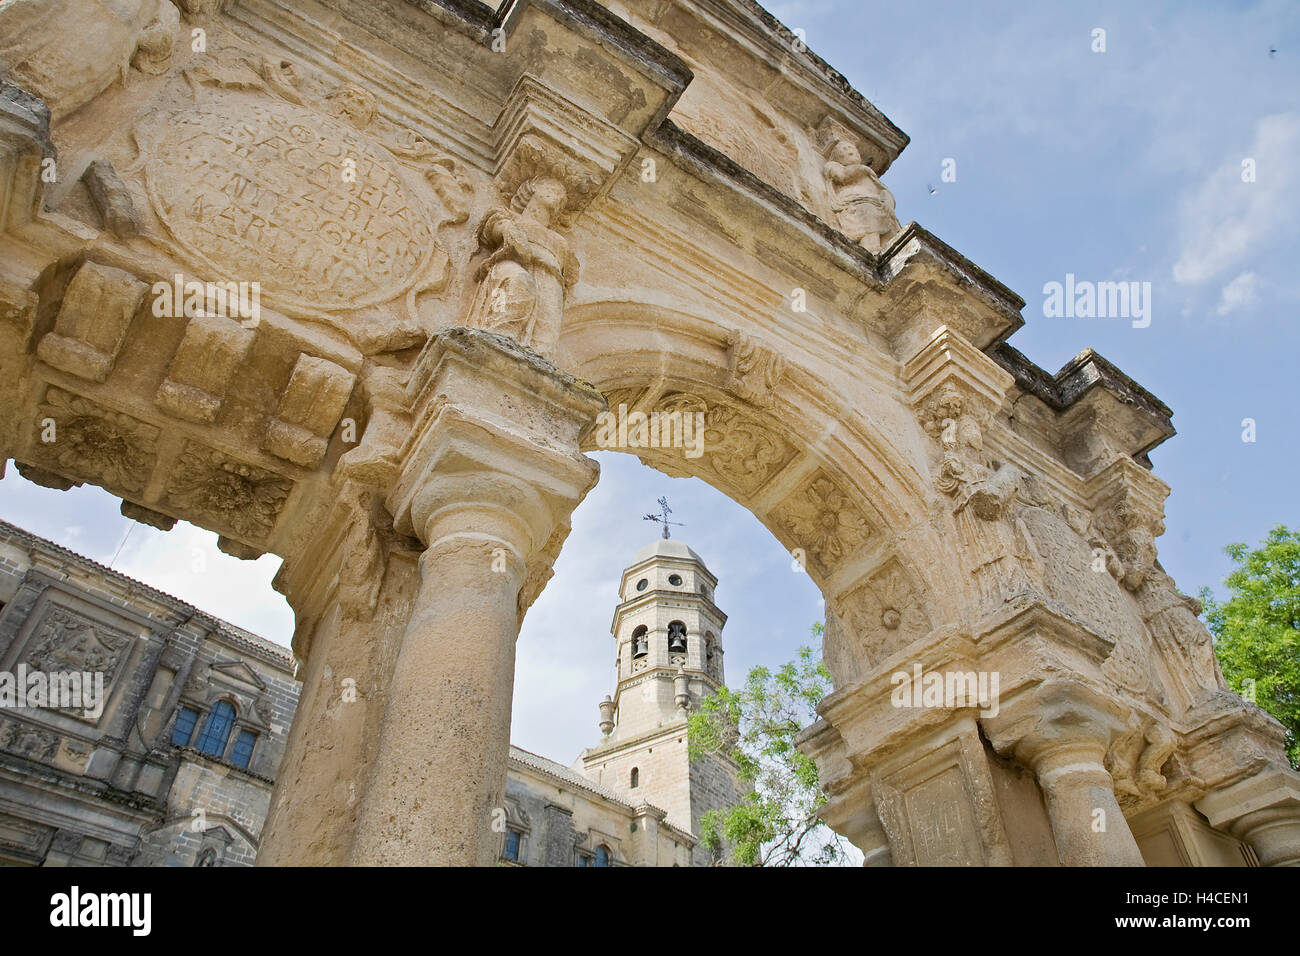 Cathedral of Baeza, Jaen, Andalusia, Spain - Stock Image